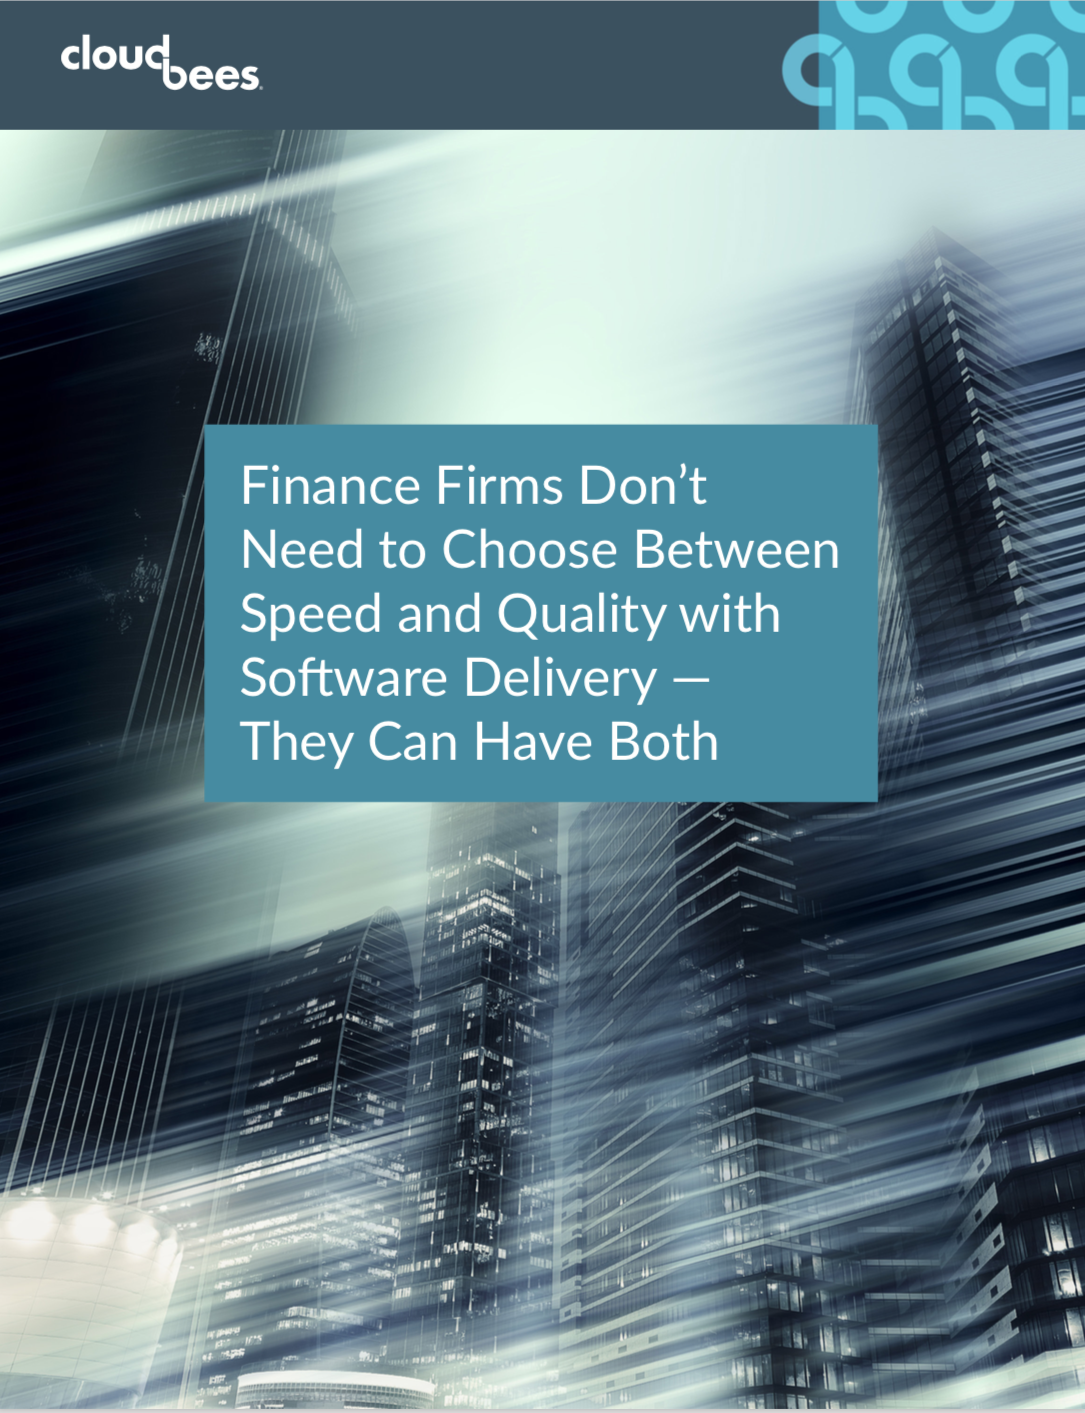 Finance Firms Don't Need to Choose Between Speed and Quality with Software Delivery